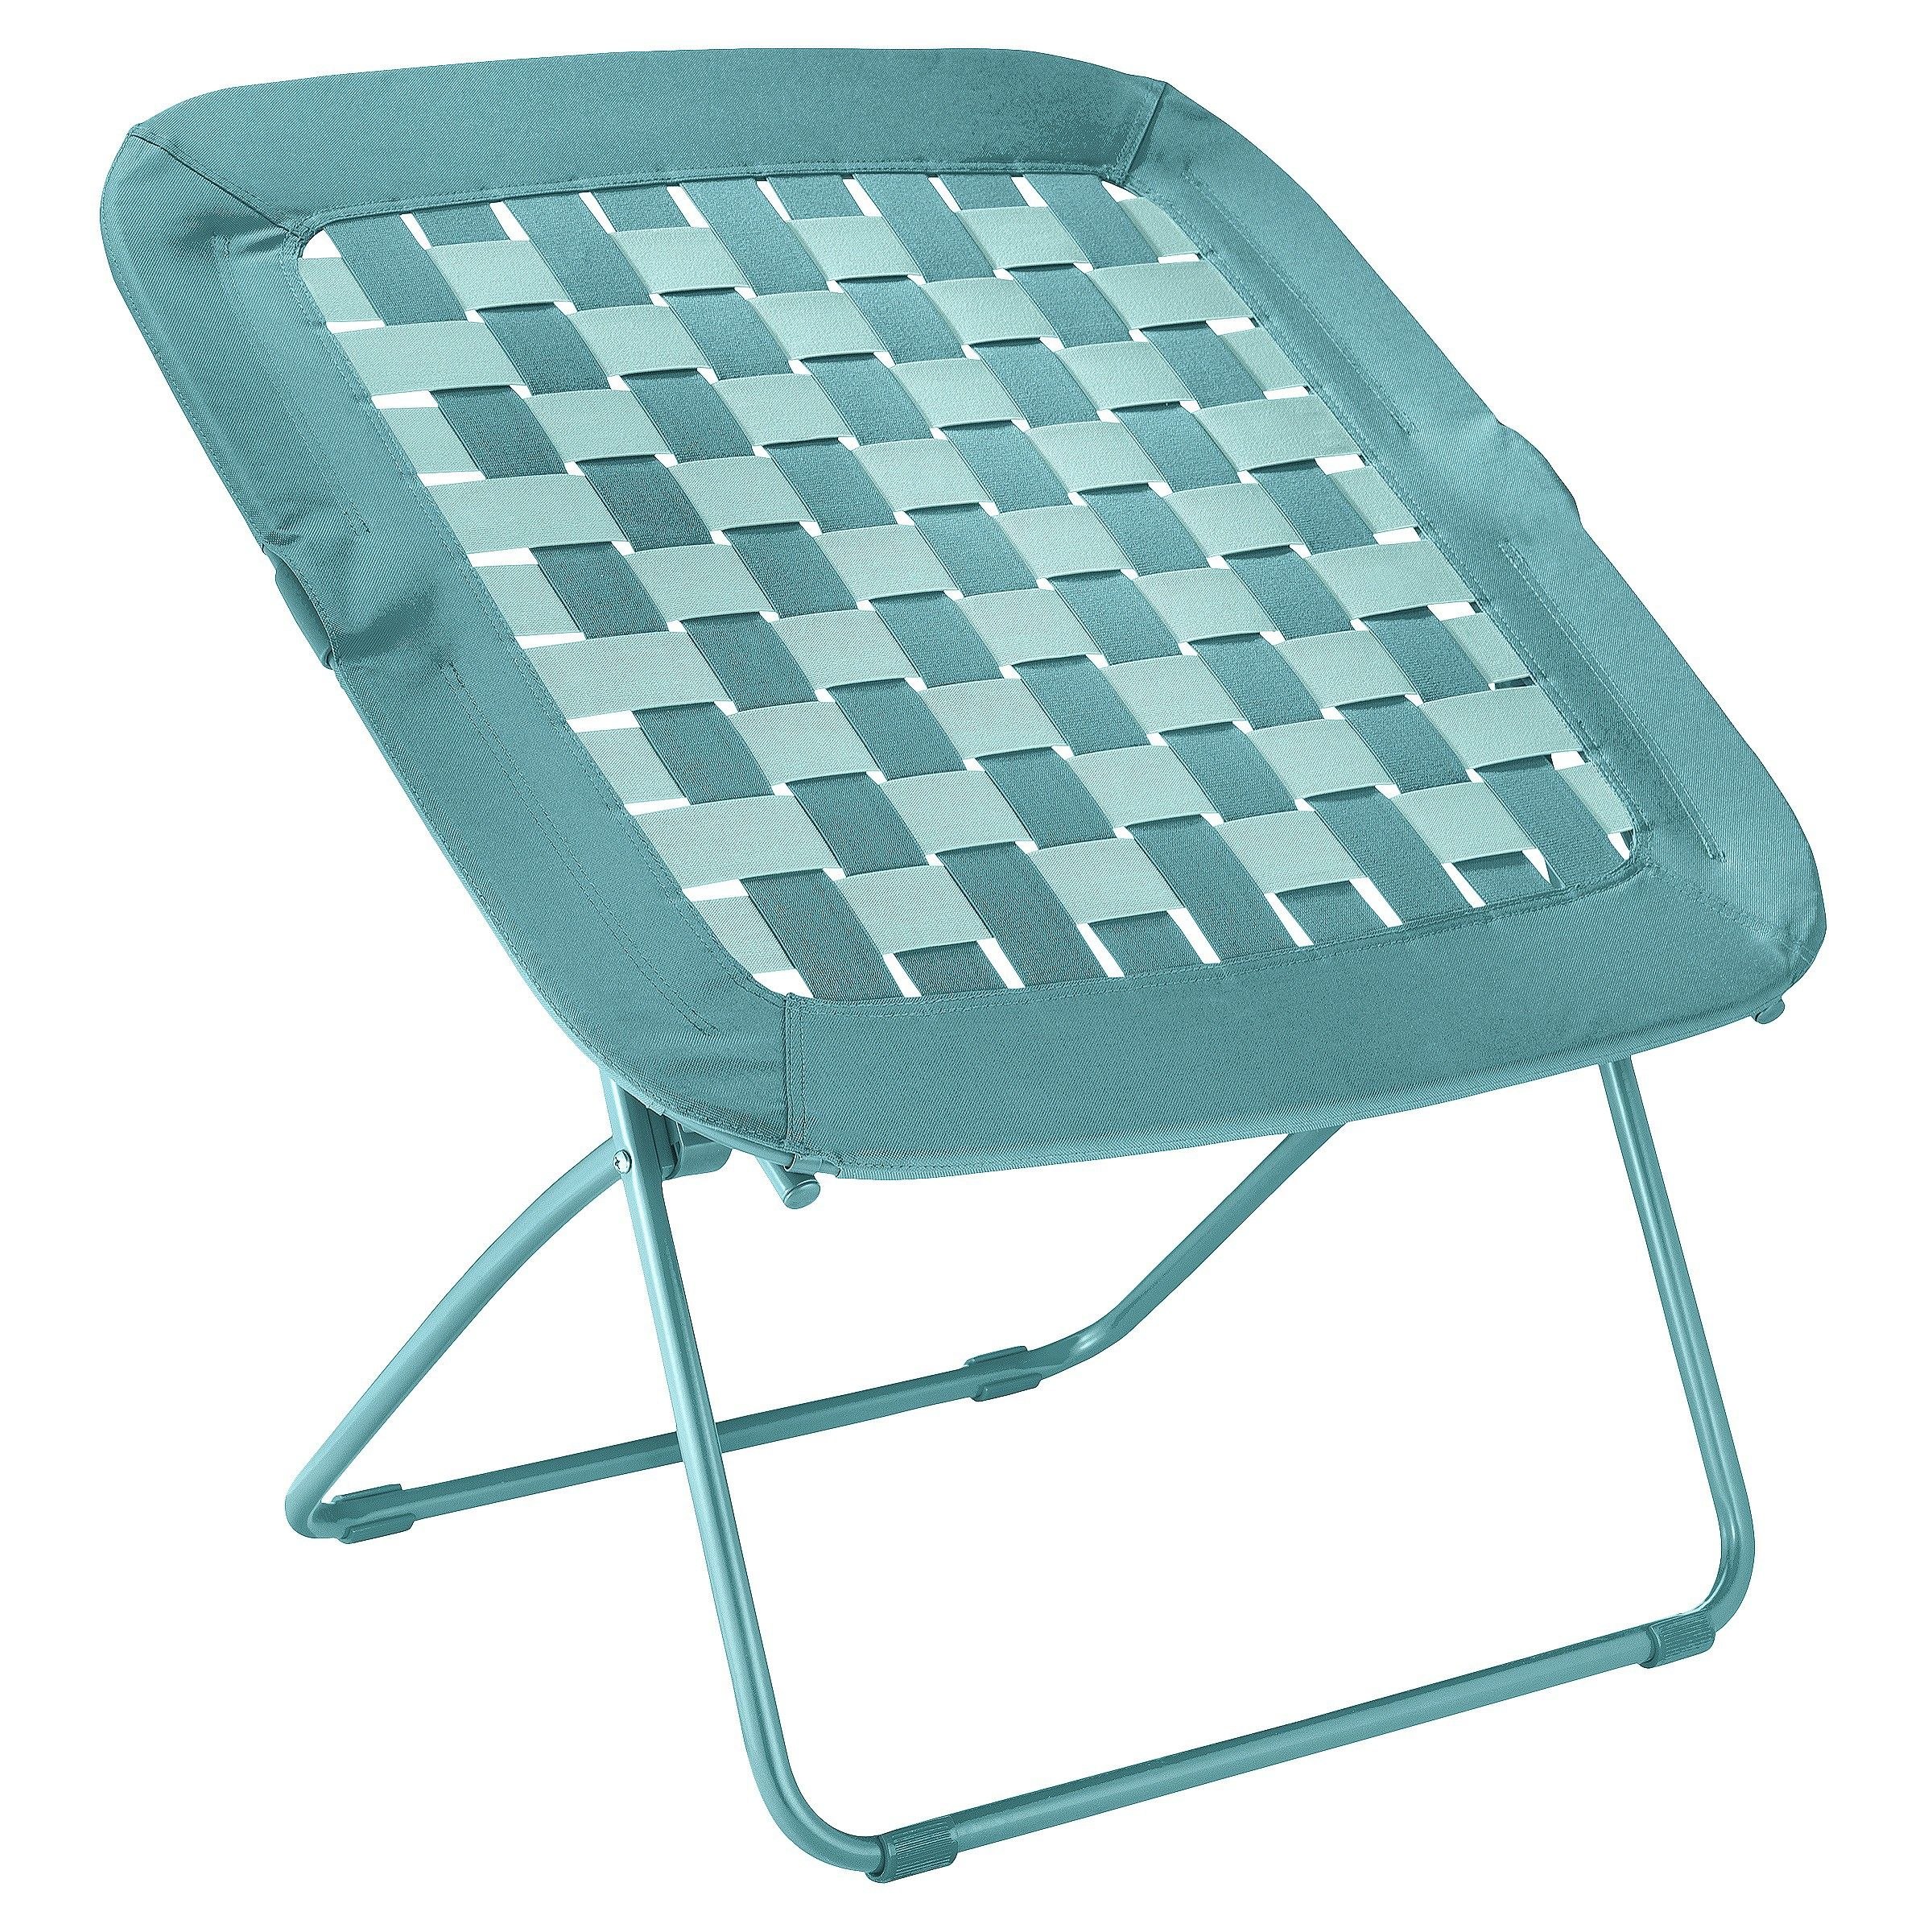 Room Essentials Waffle Chair Tar $40